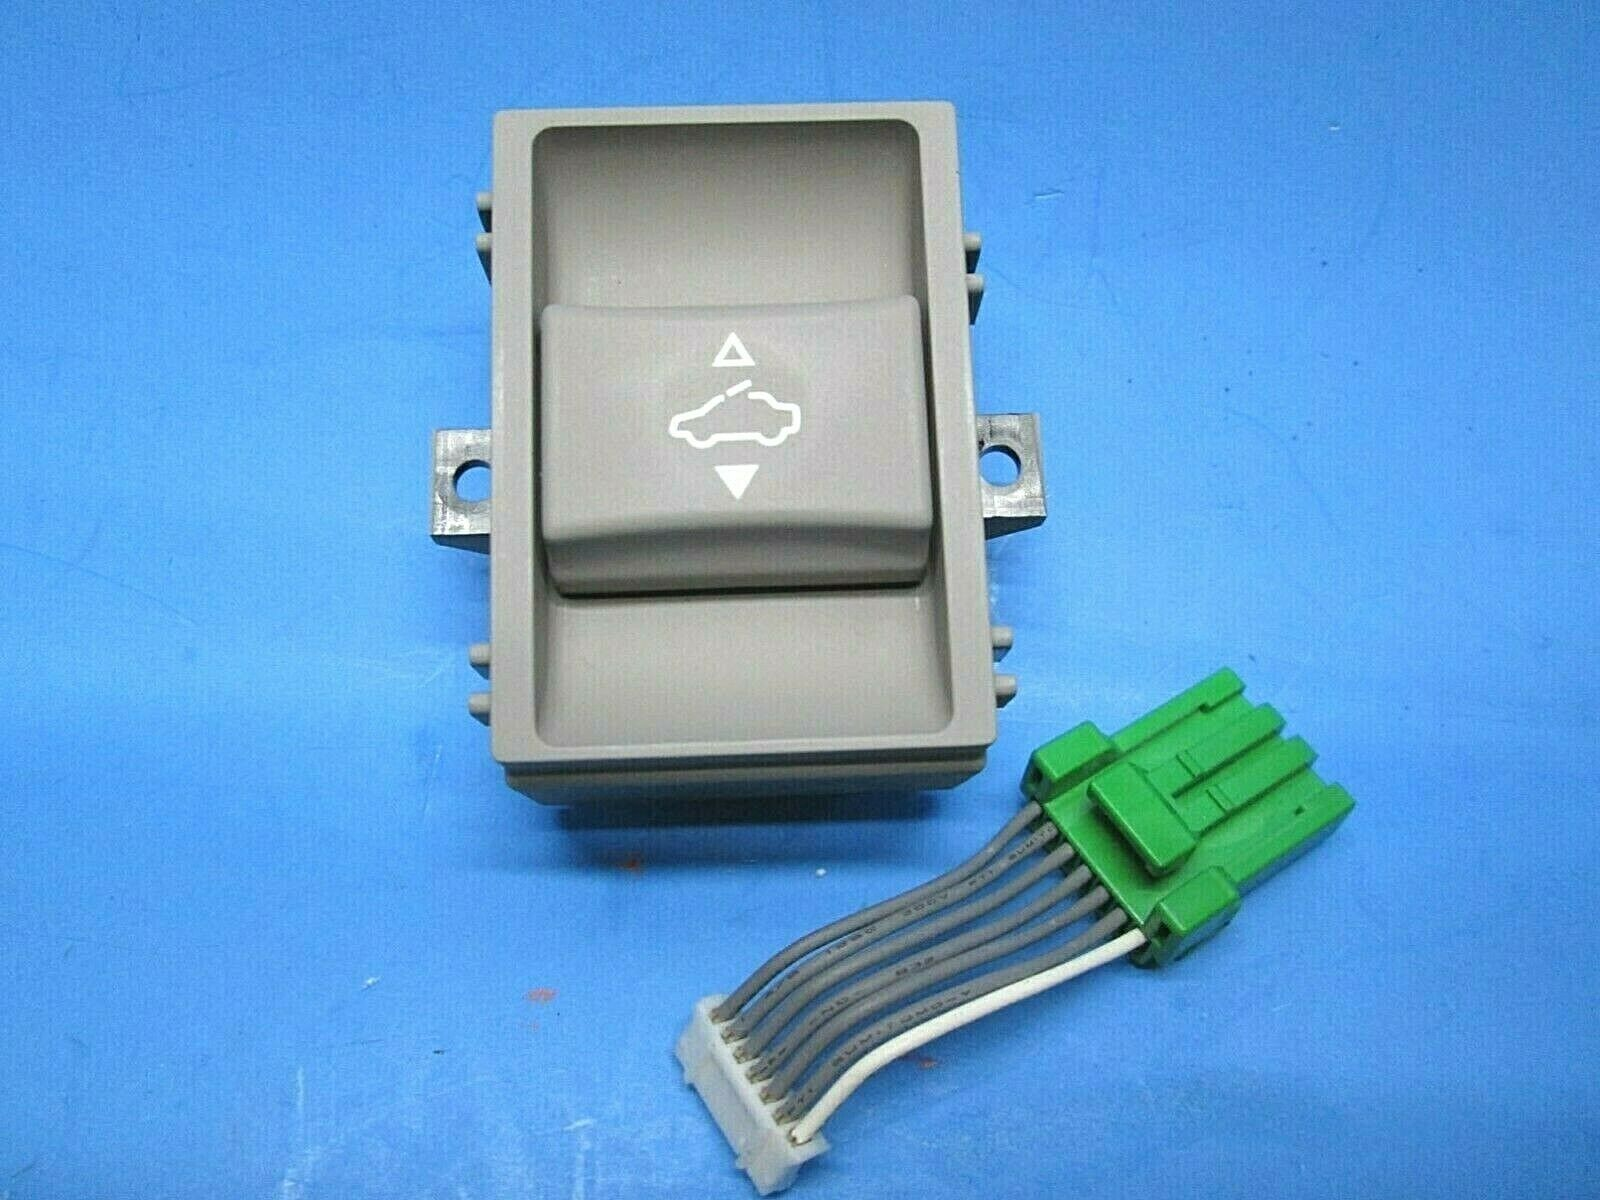 Primary image for 05 06 07 08 Acura RL sunroof switch button ivory 35830-SJA-013ZC OEM